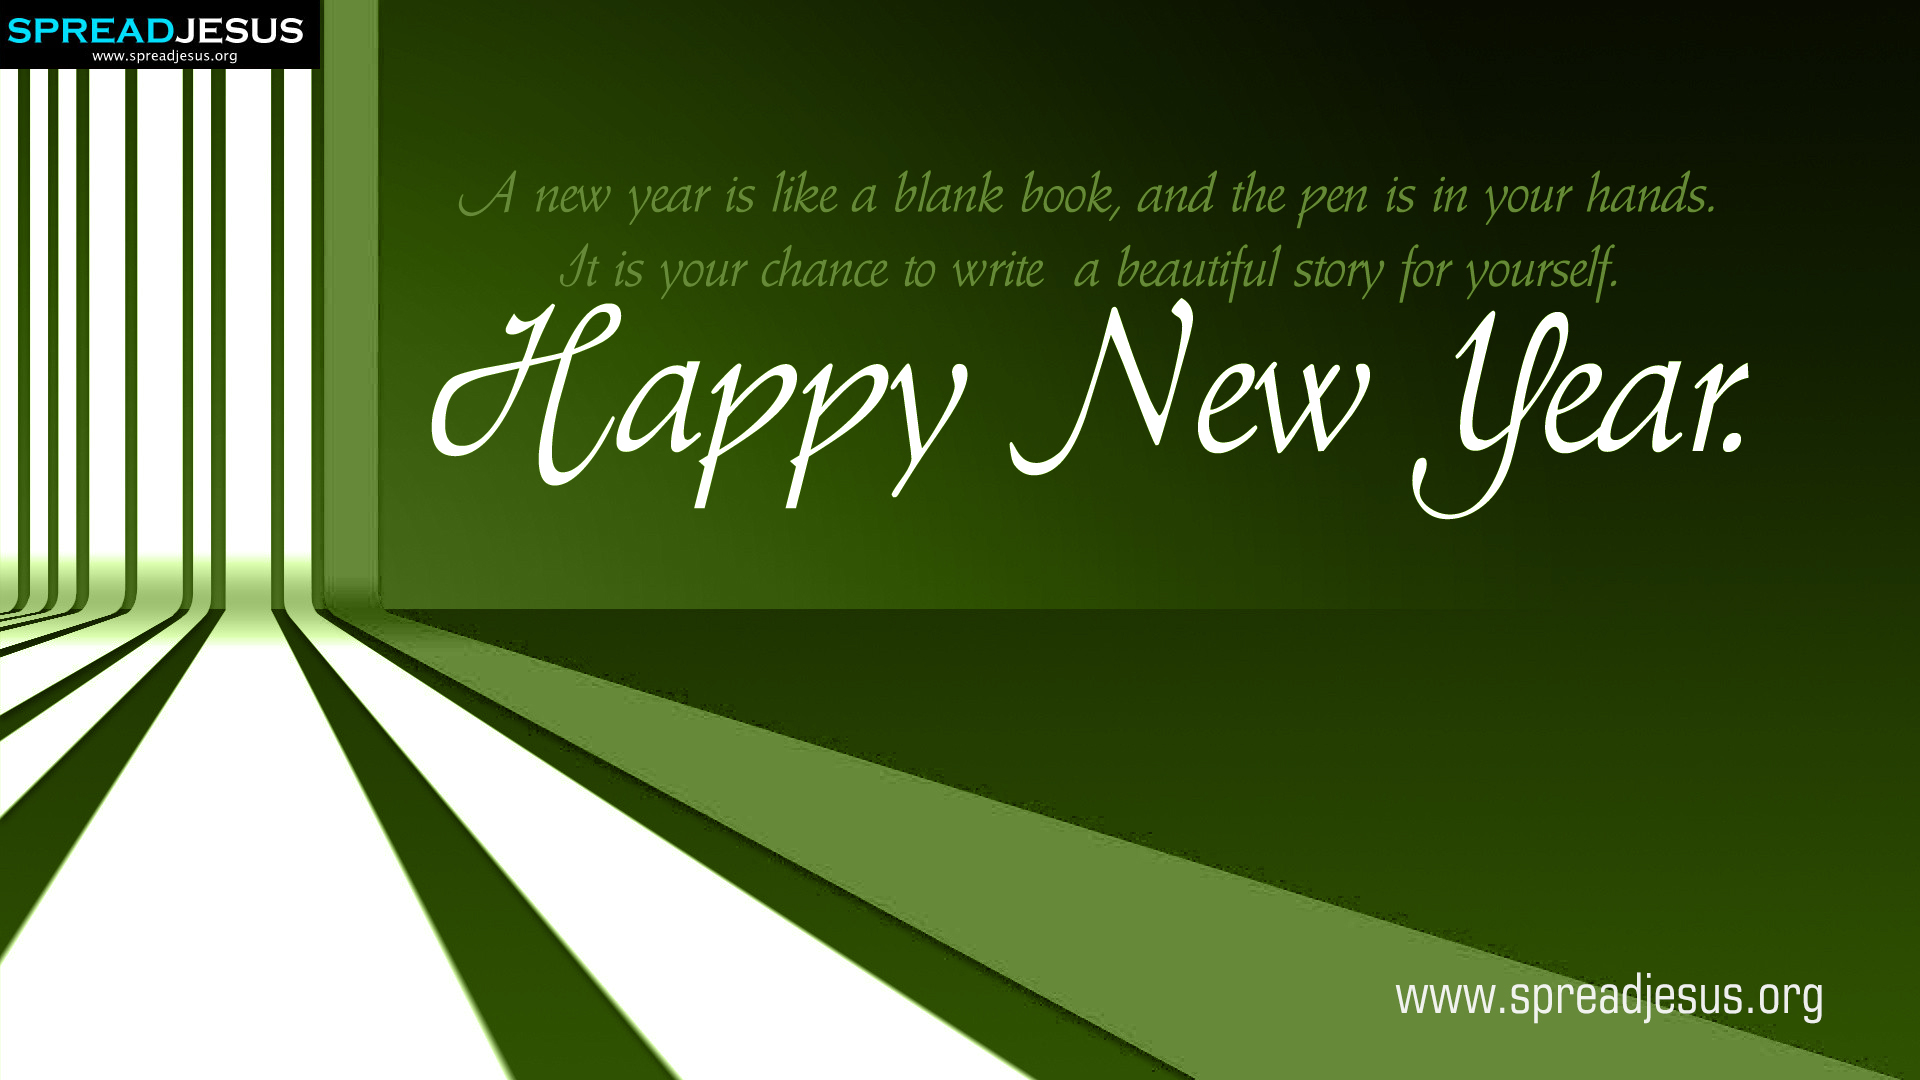 Wallpaper download new year - Happy New Year Wallpapers Download Free Happy New Year 2017 Hd Wallpapers Download